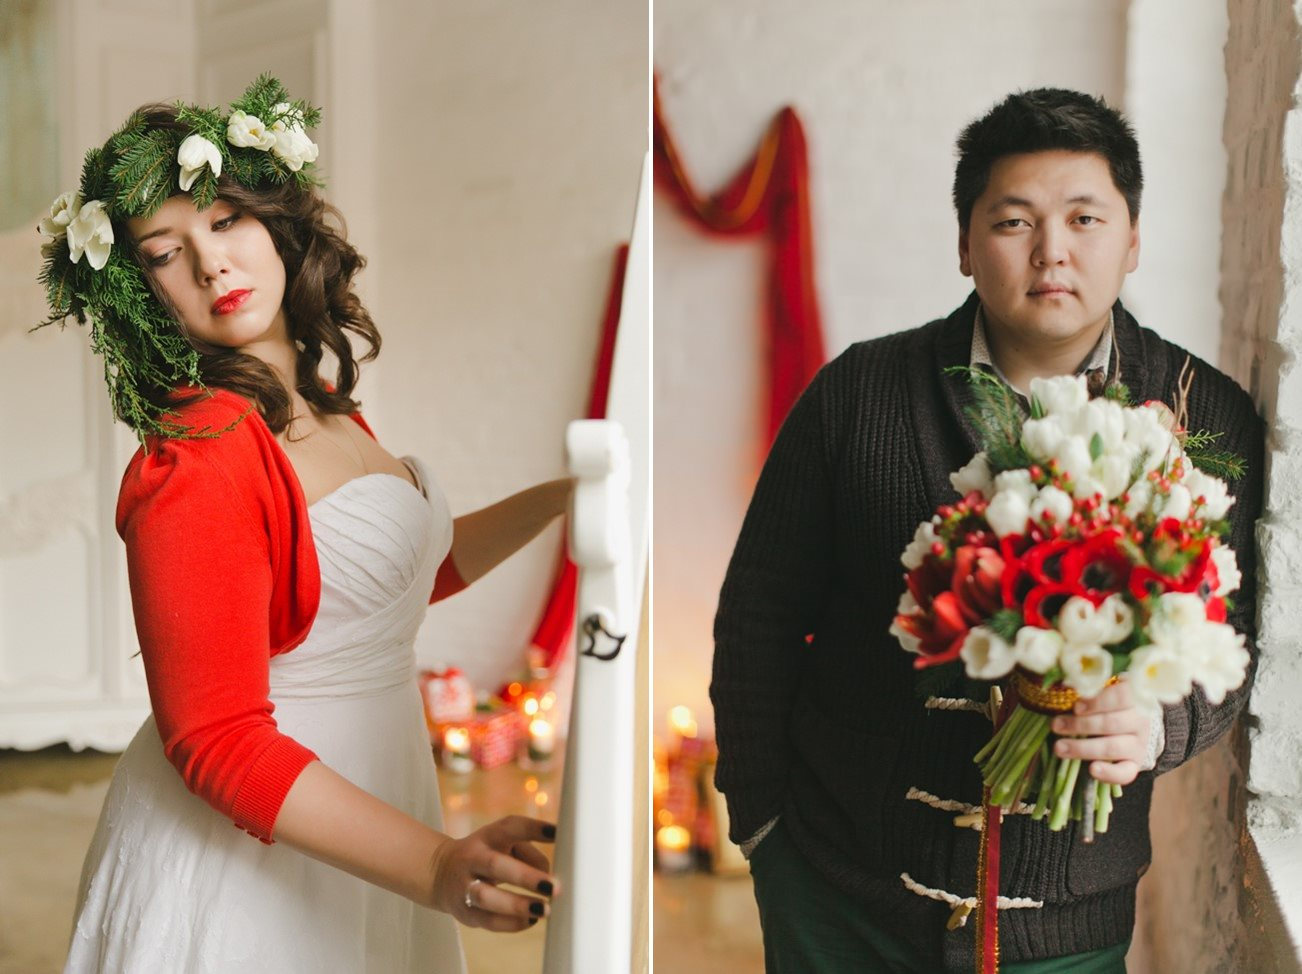 Christmas Bride & Groom - A Cosy Christmas Wedding Inspiration Shoot in Red, Green & White from WarmPhoto